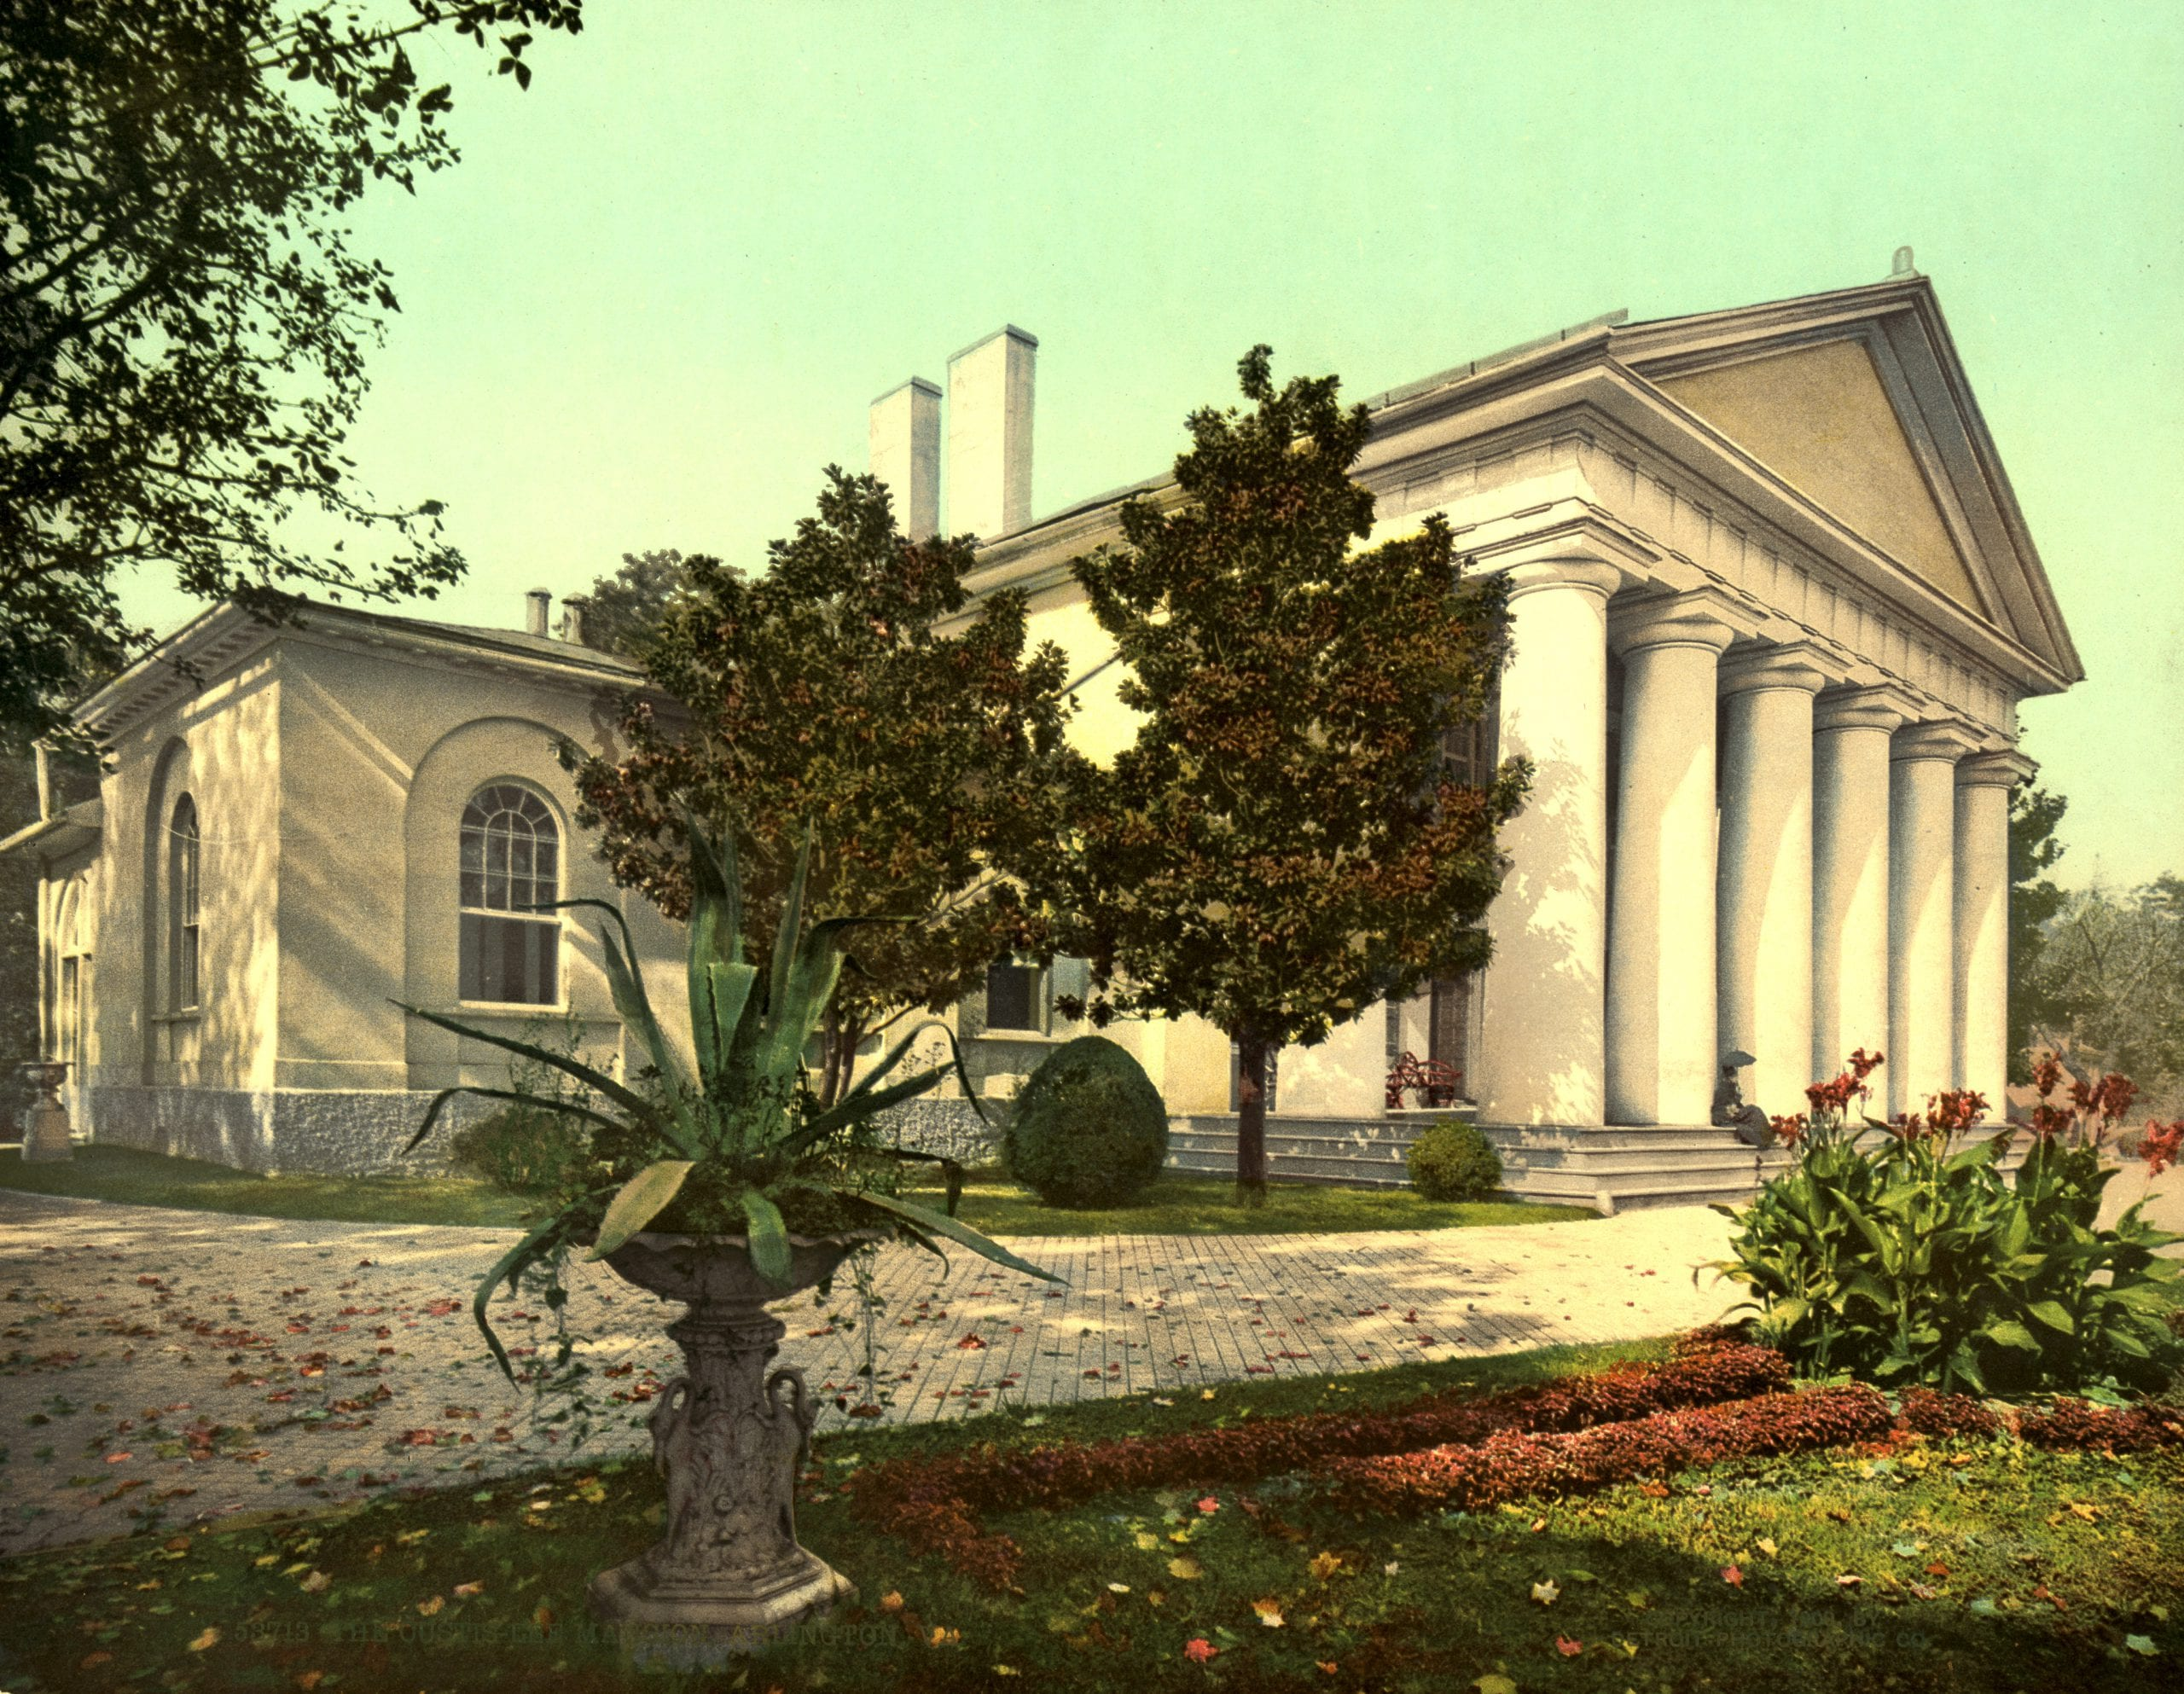 Arlington House in 1900